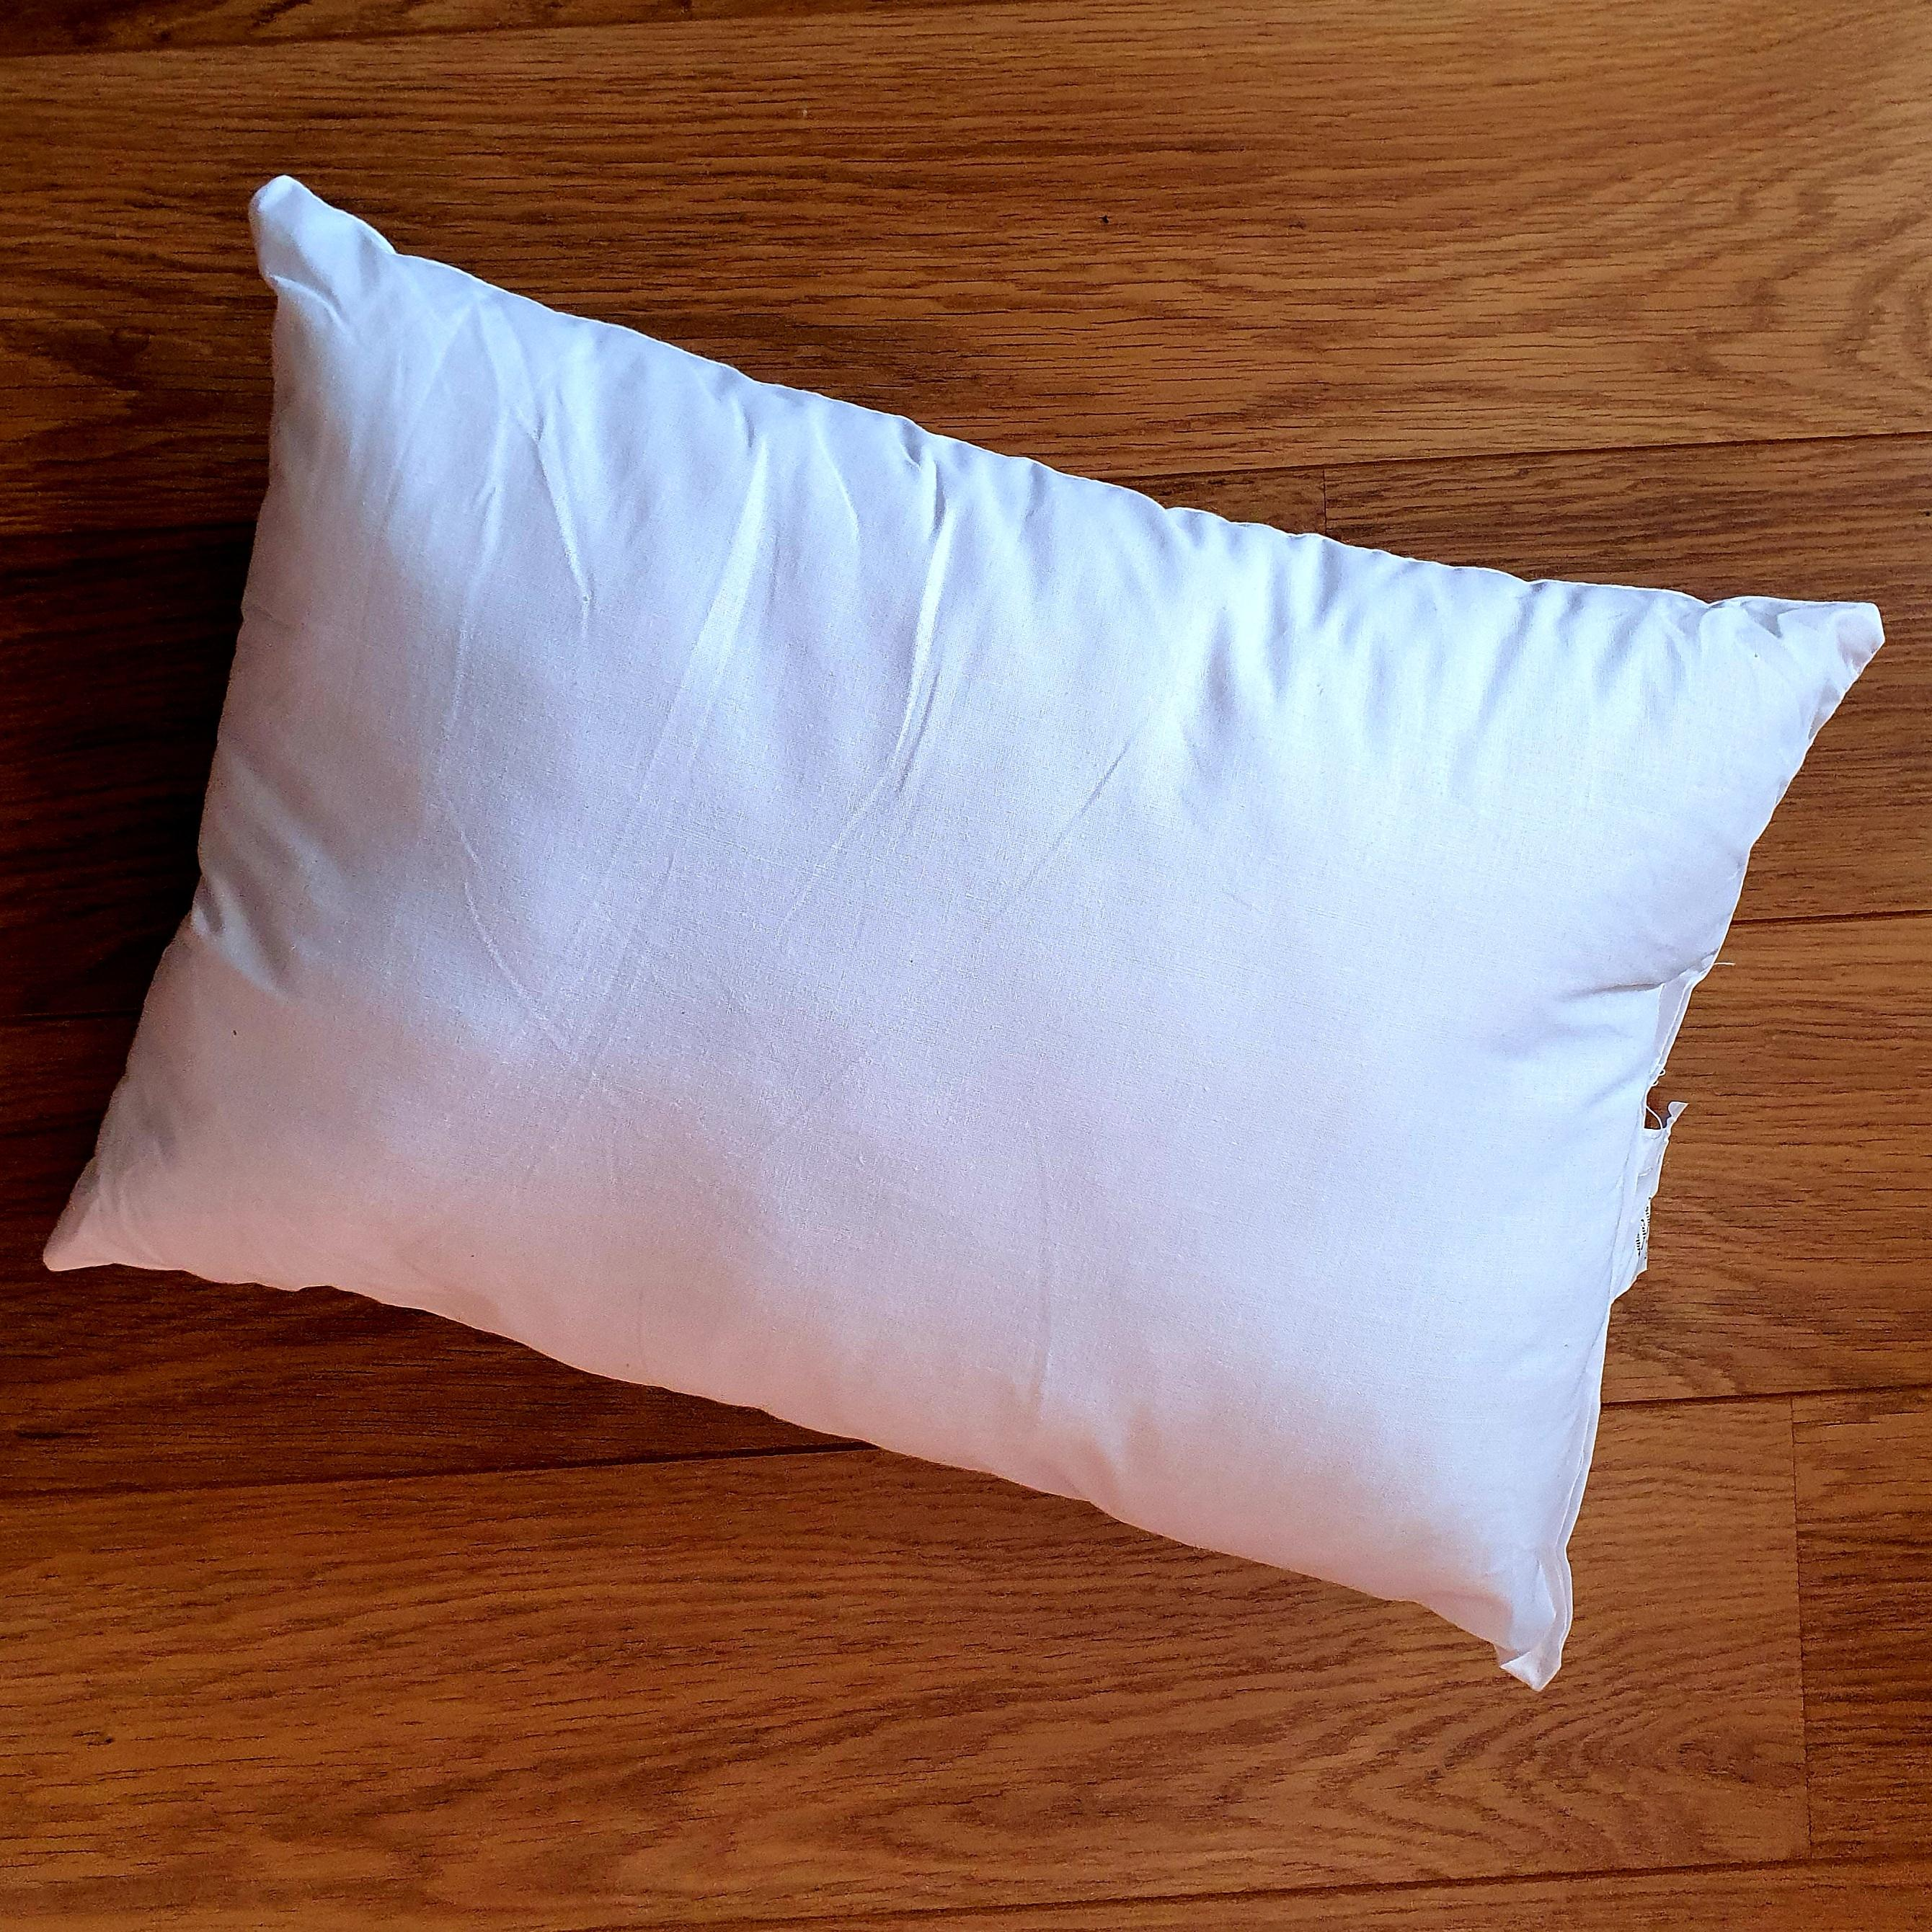 45cm x 30cm cushion inner pad generously filled with Eco-Hollowfibre made from recycled plastic bottles in white poly cotton outer cover.